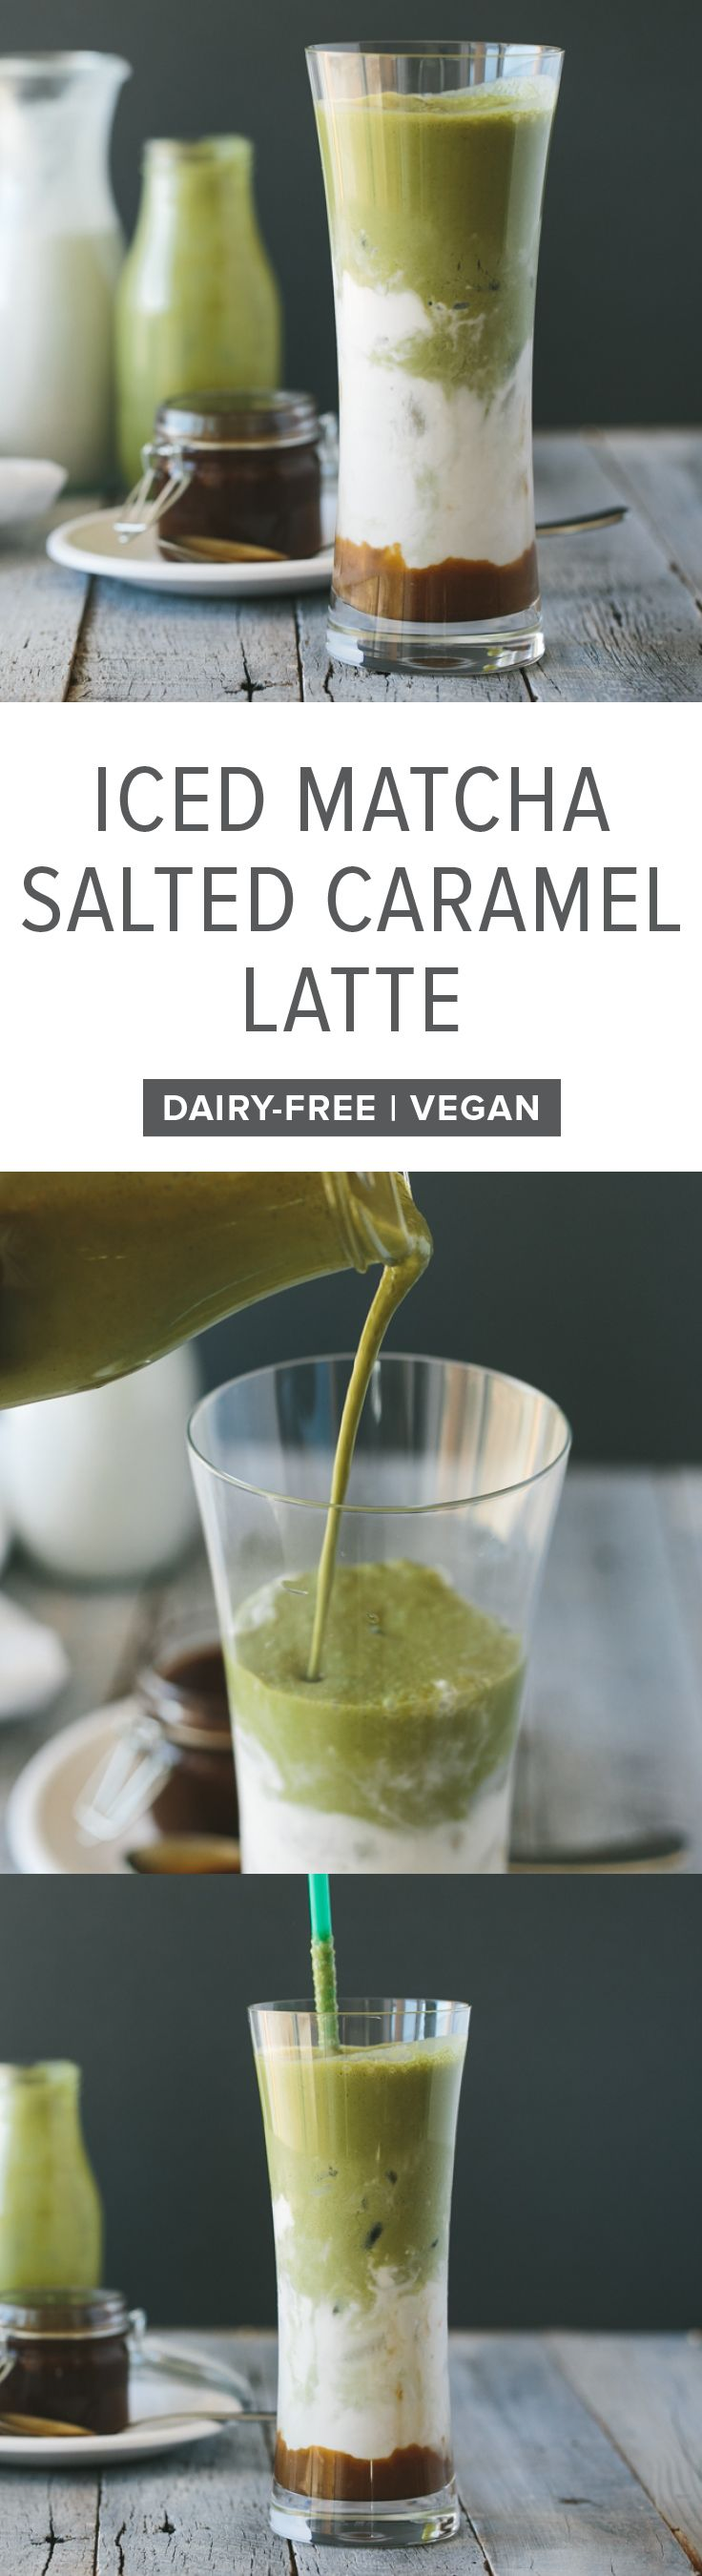 (dairy-free, vegan, paleo) Iced matcha and salted caramel latte. A layered and sweet iced matcha latte.